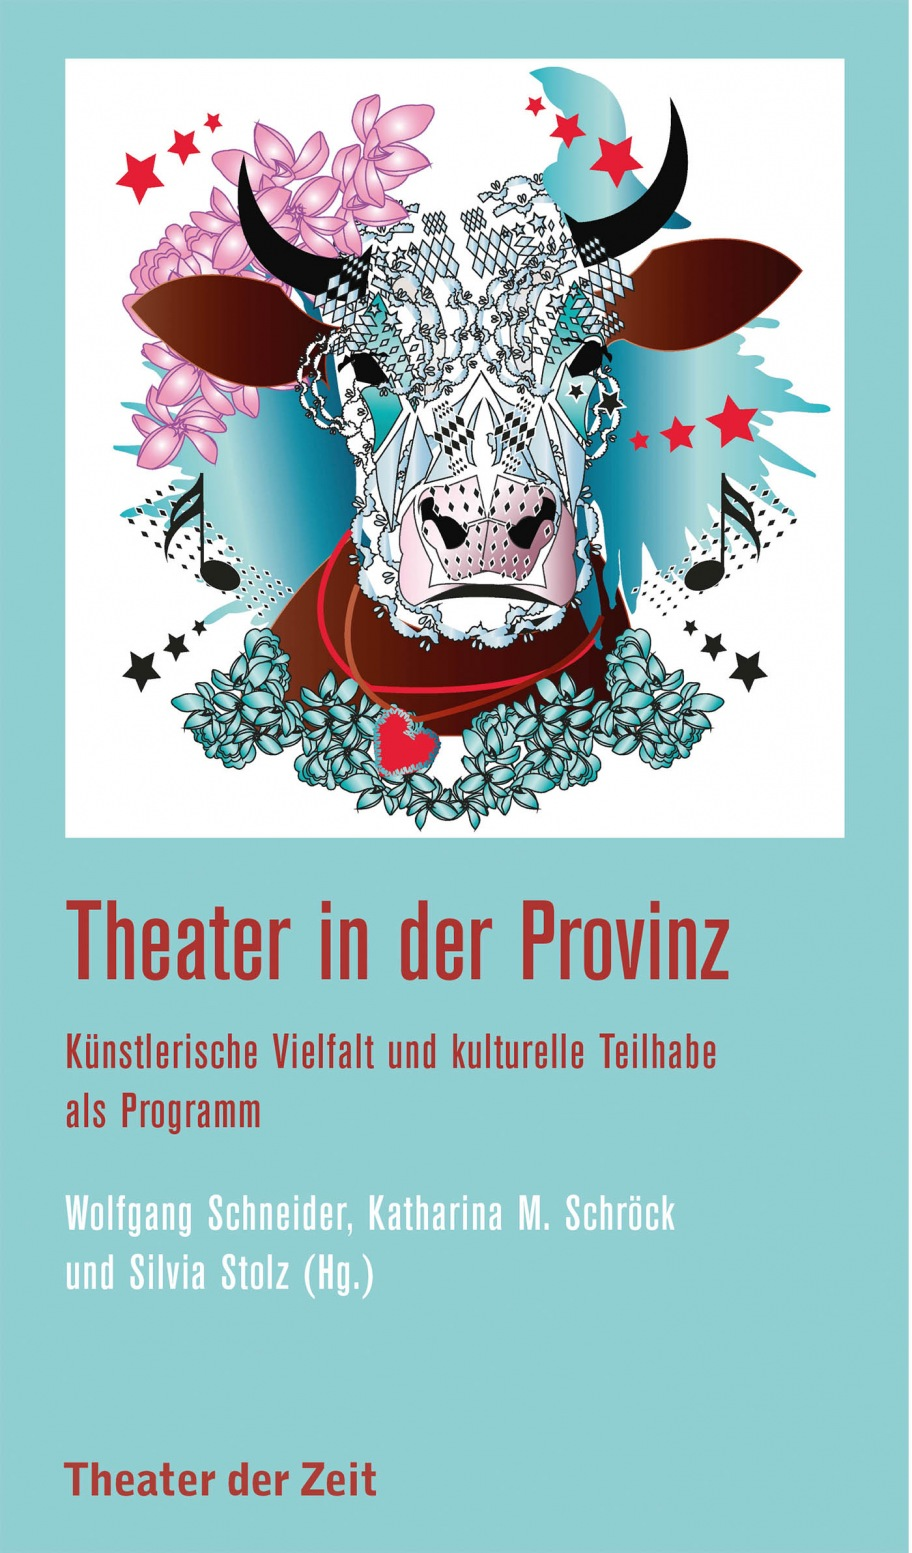 Theater in der Provinz